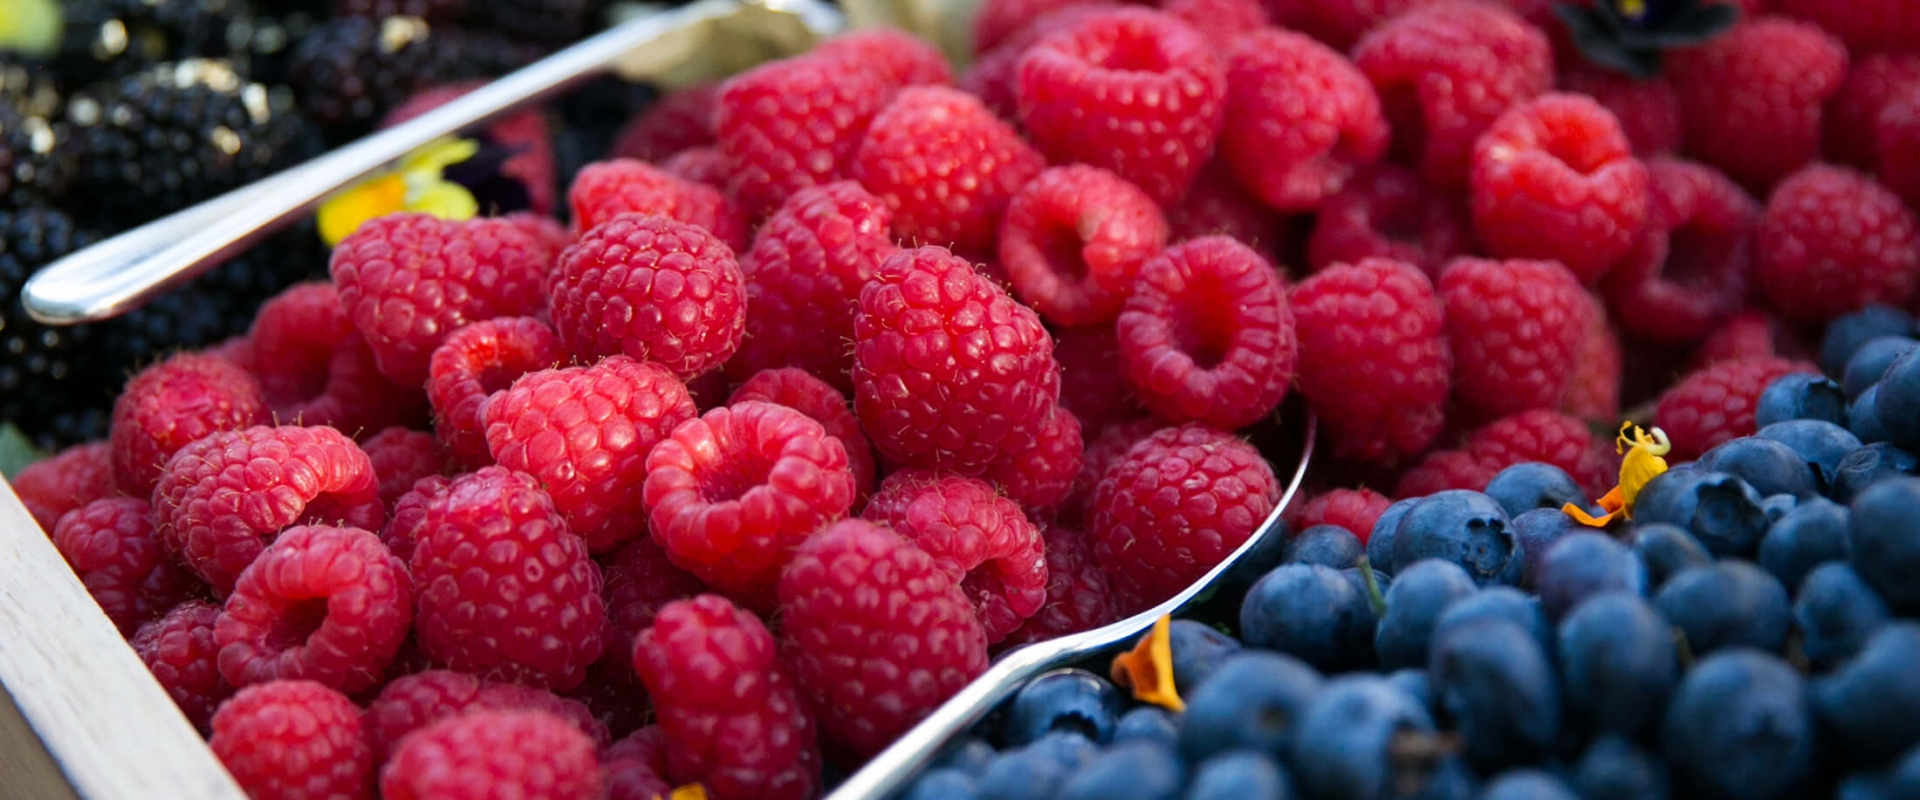 Fresh raspberries, blueberries & blackberries at Parq Vancouver